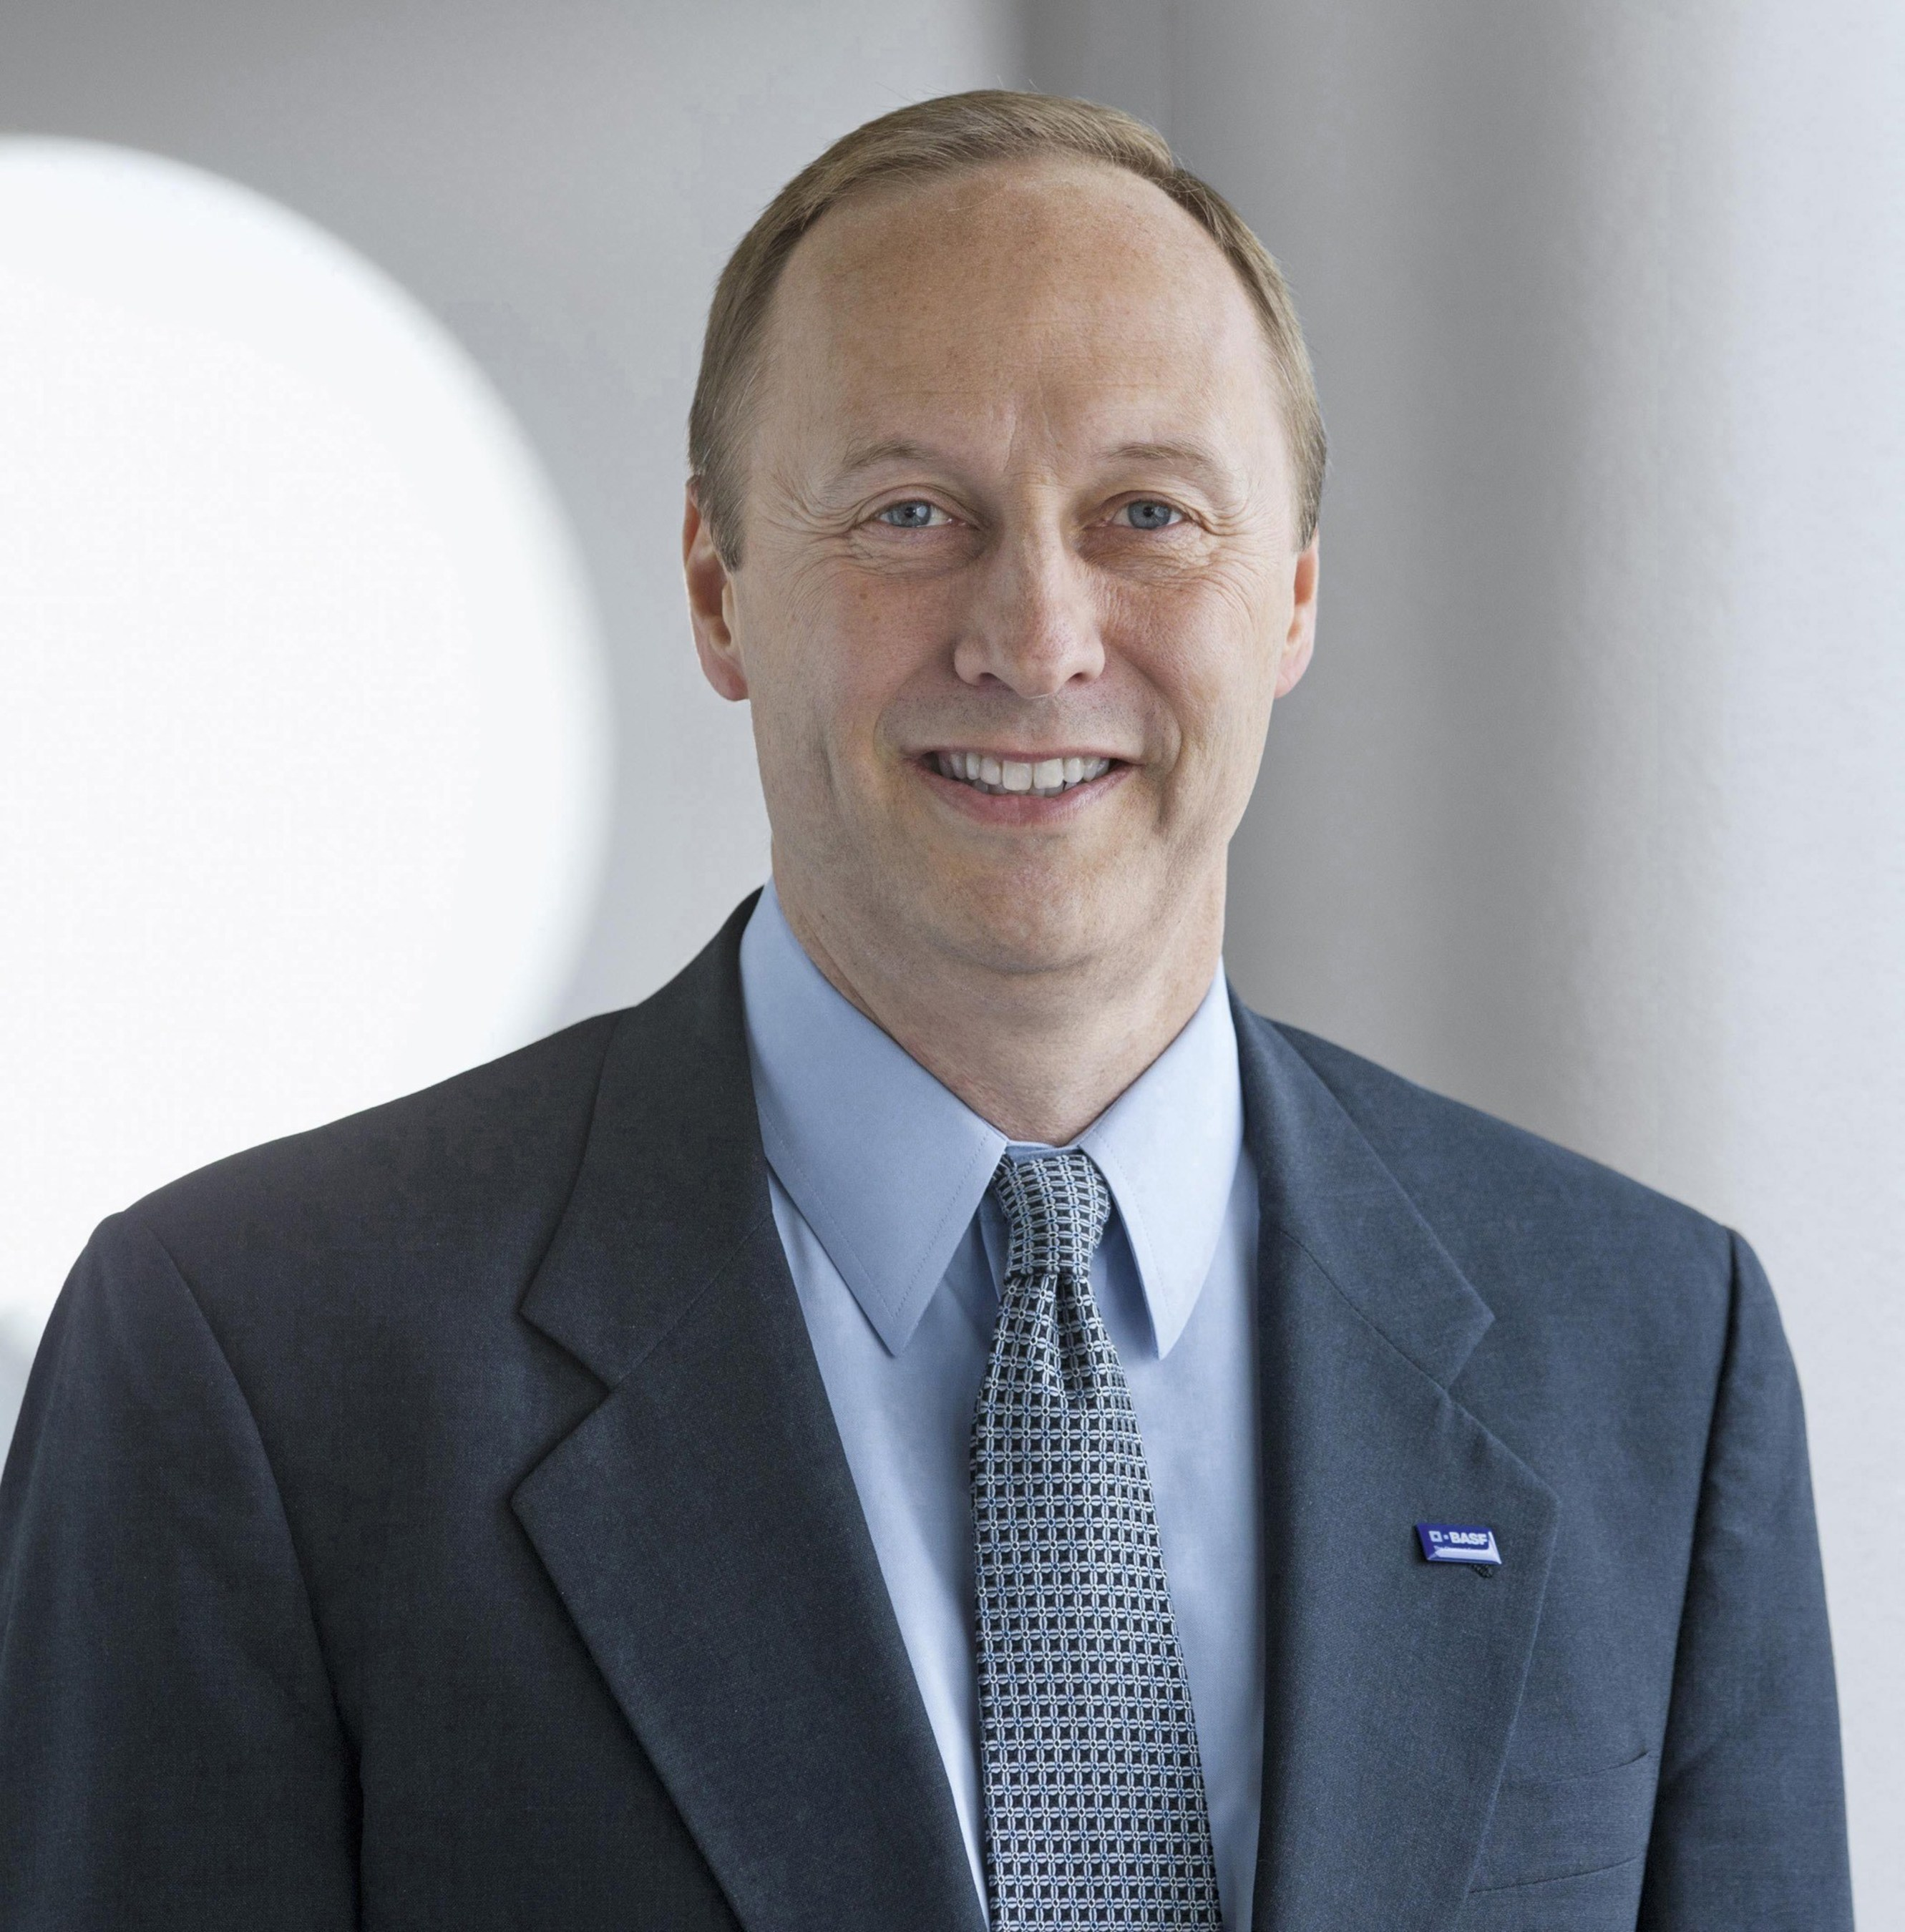 Wayne T  Smith is new Chairman and CEO of BASF Corporation